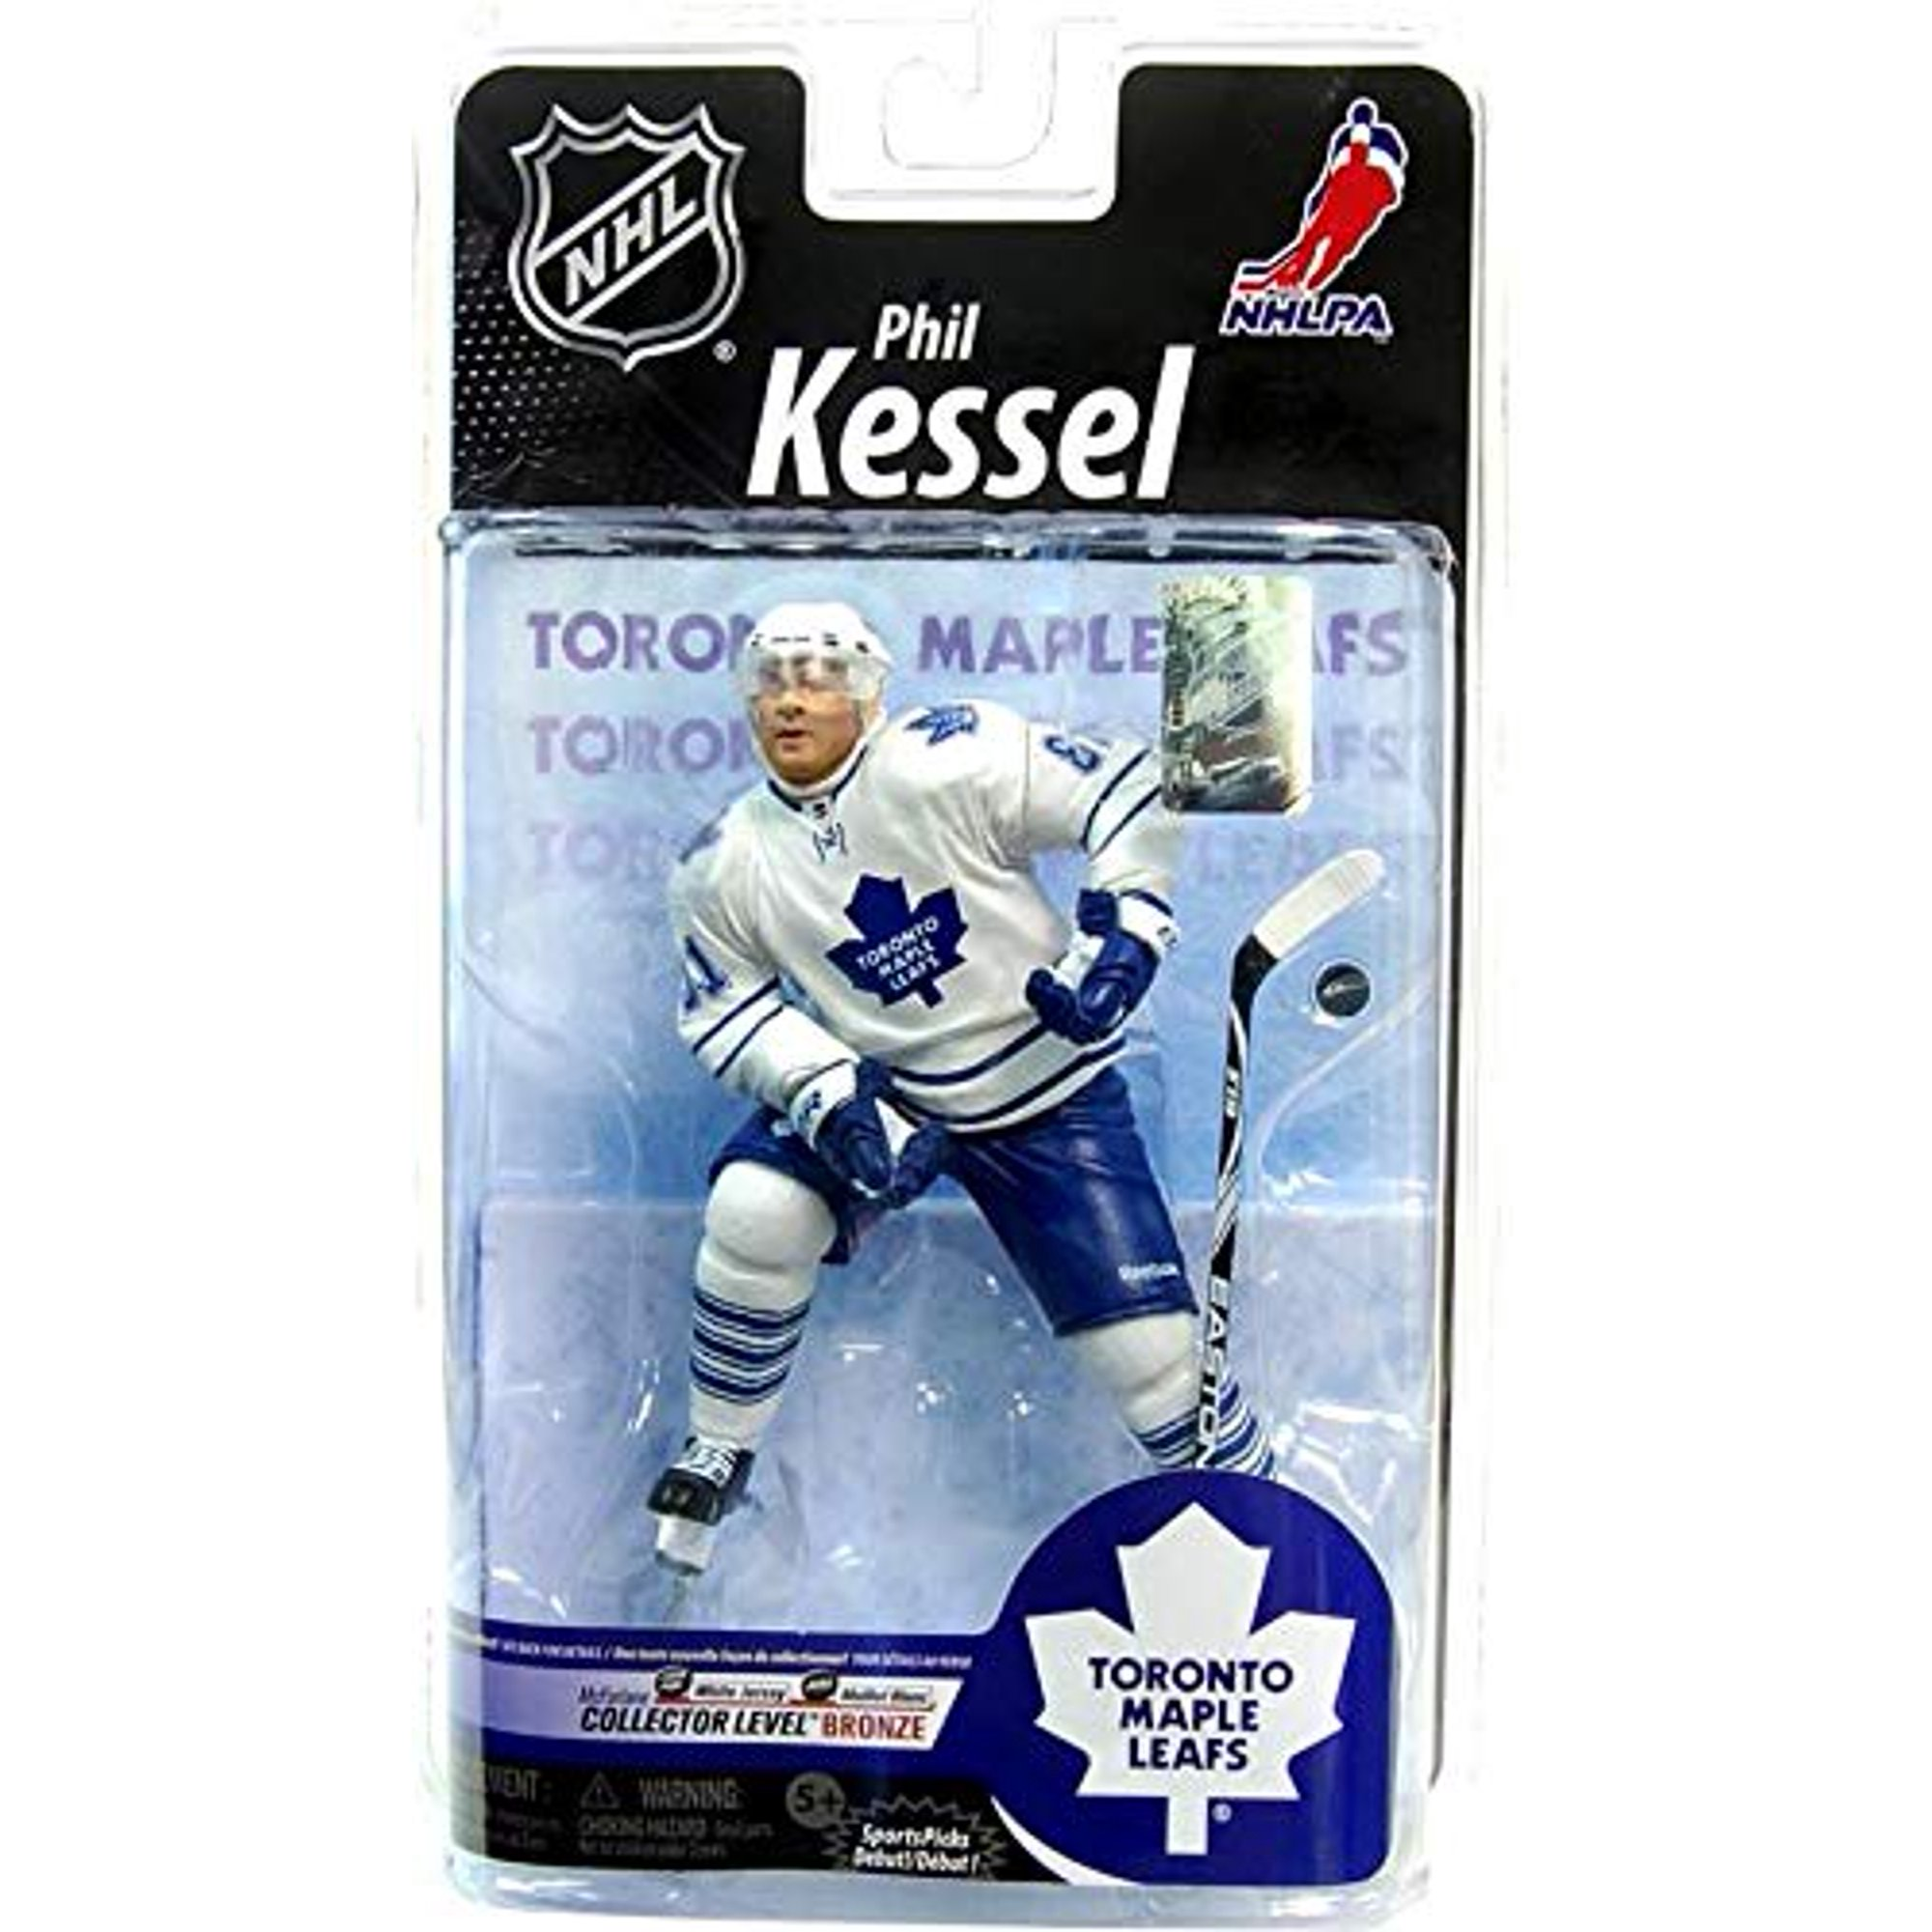 wholesale dealer 00ff4 3be0c McFarlane Toys NHL Sports Picks Series 25 Action Figure Phil Kessel  (Toronto Maple Leafs) White Jersey Bronze Collector Level Chase